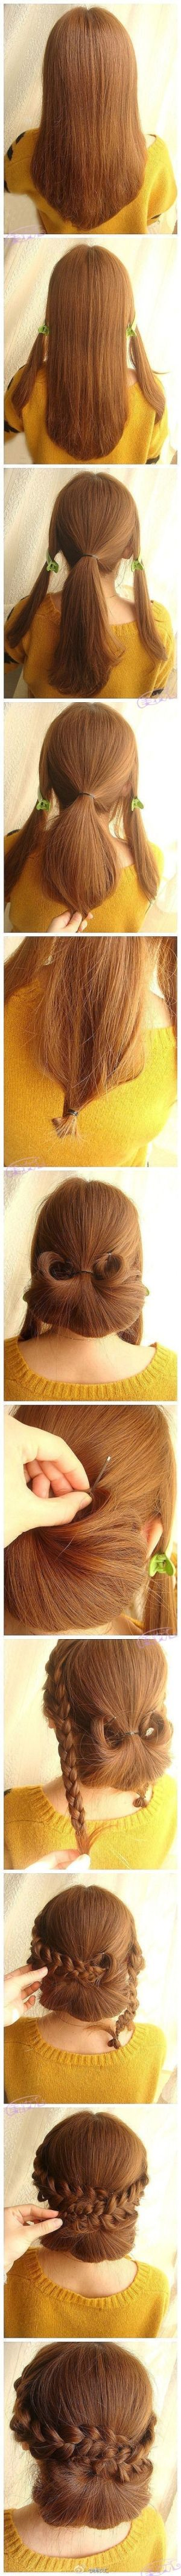 6 Long Prom Hairstyles Just For You